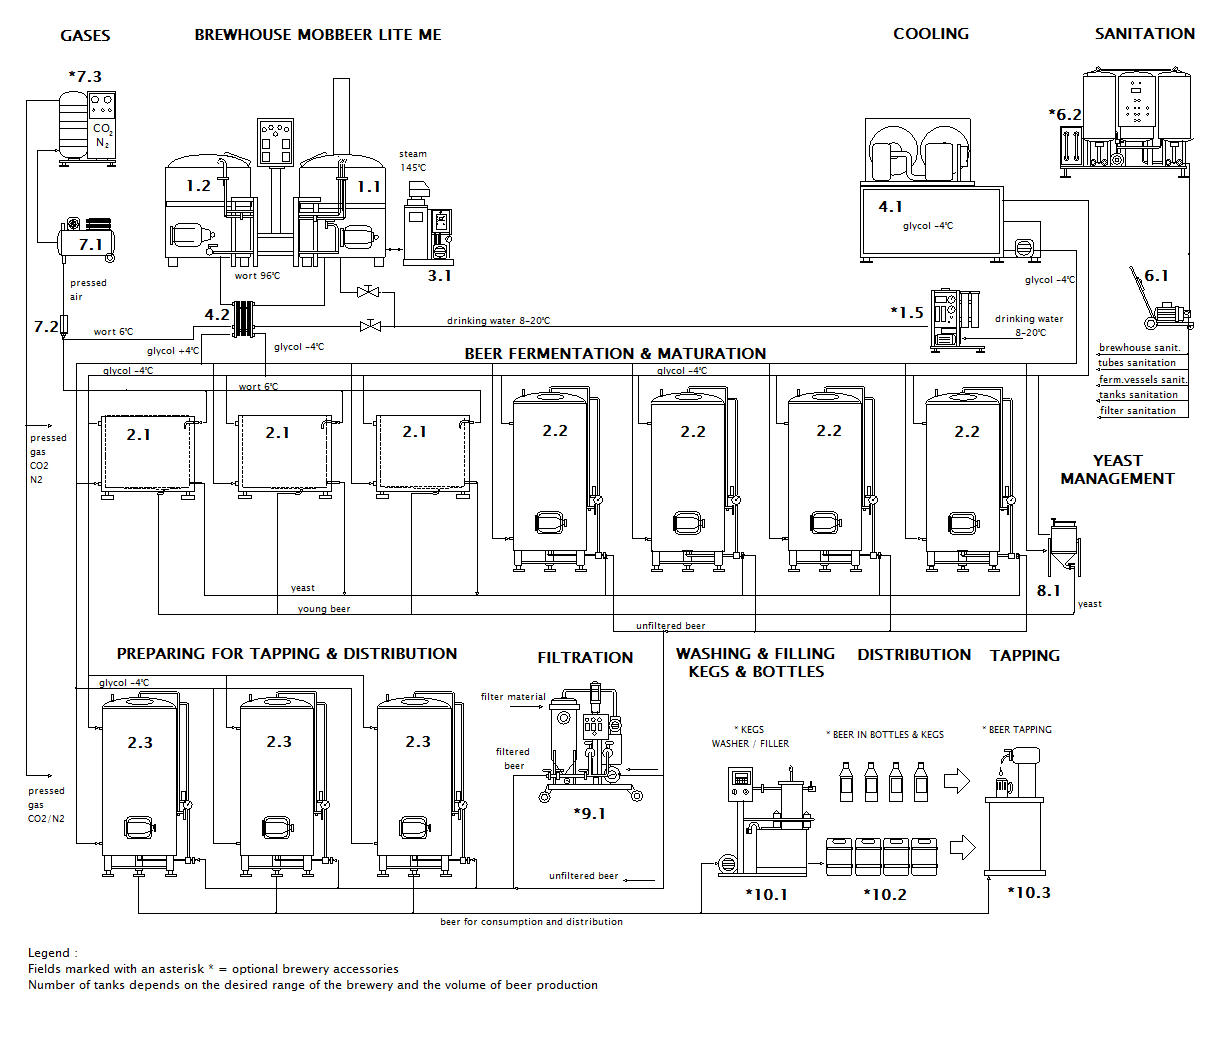 scheme of the container microbrewery MOBBEER LITE ME OF